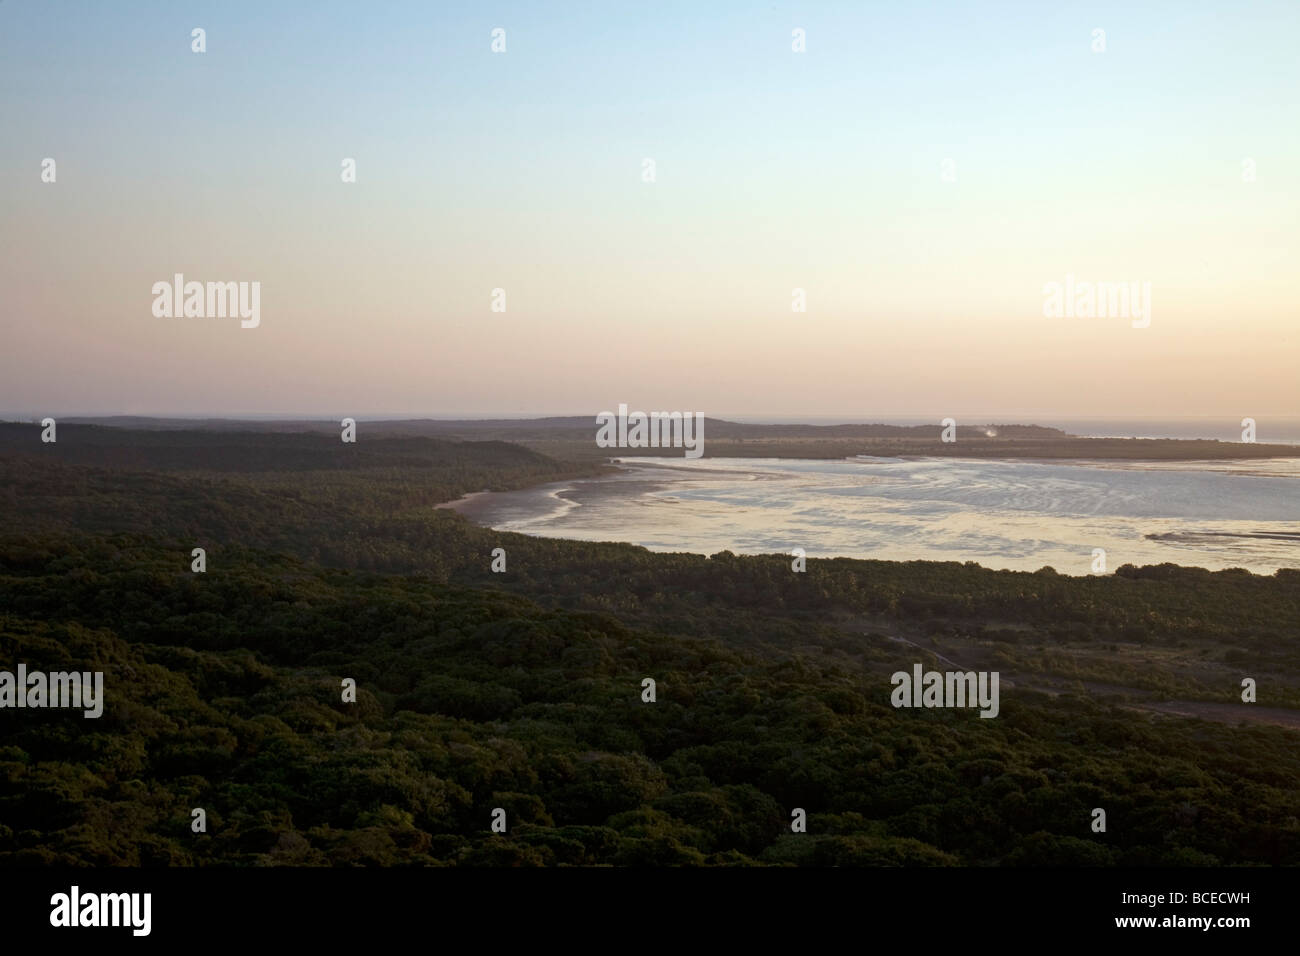 Mozambique, Inhaca Island. View from the Northern Lighthouse on Inhaca Island. Stock Photo